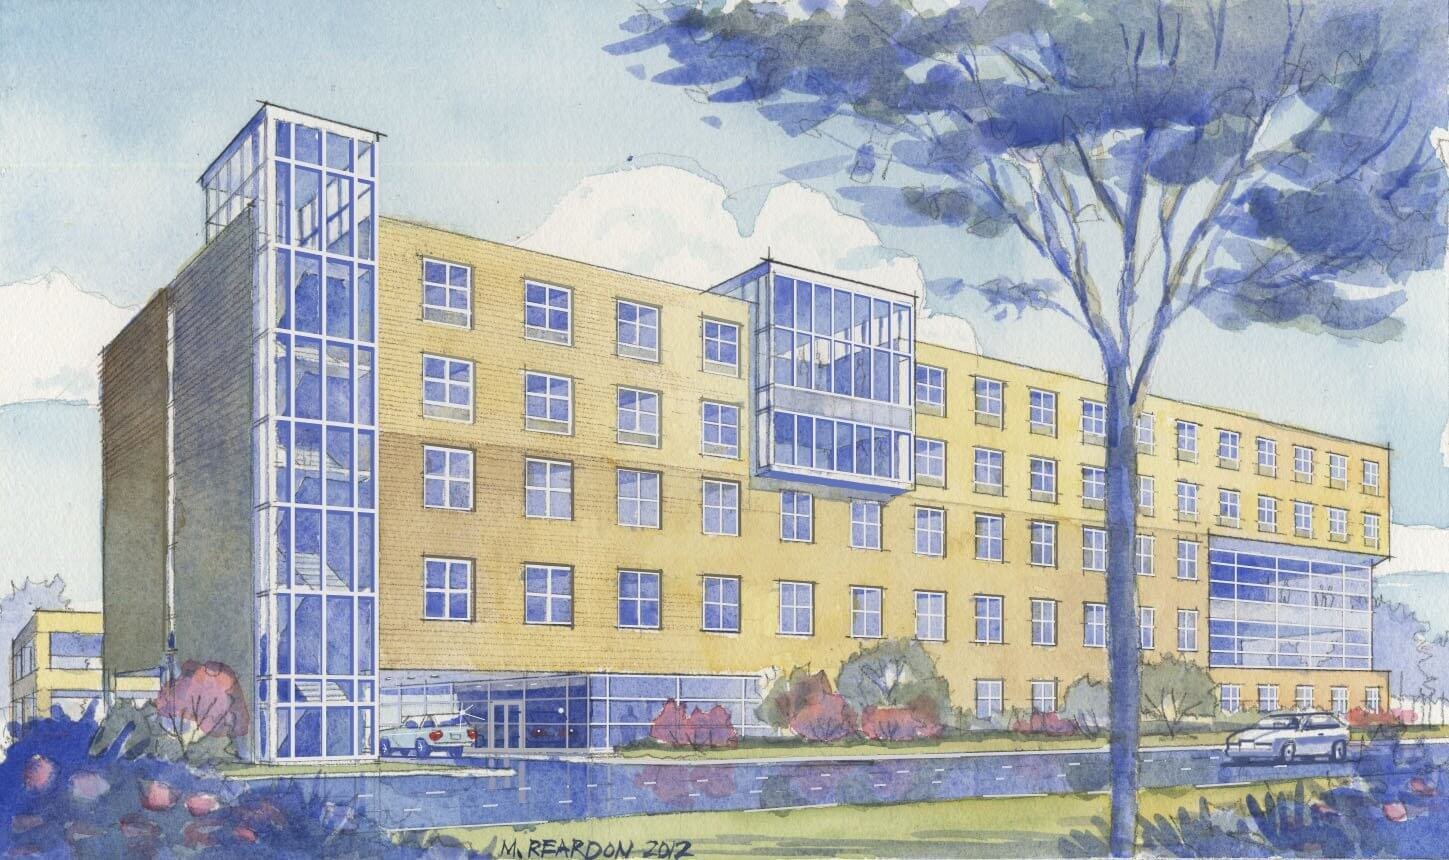 Architectural rendering of Hope Lodge Houston.